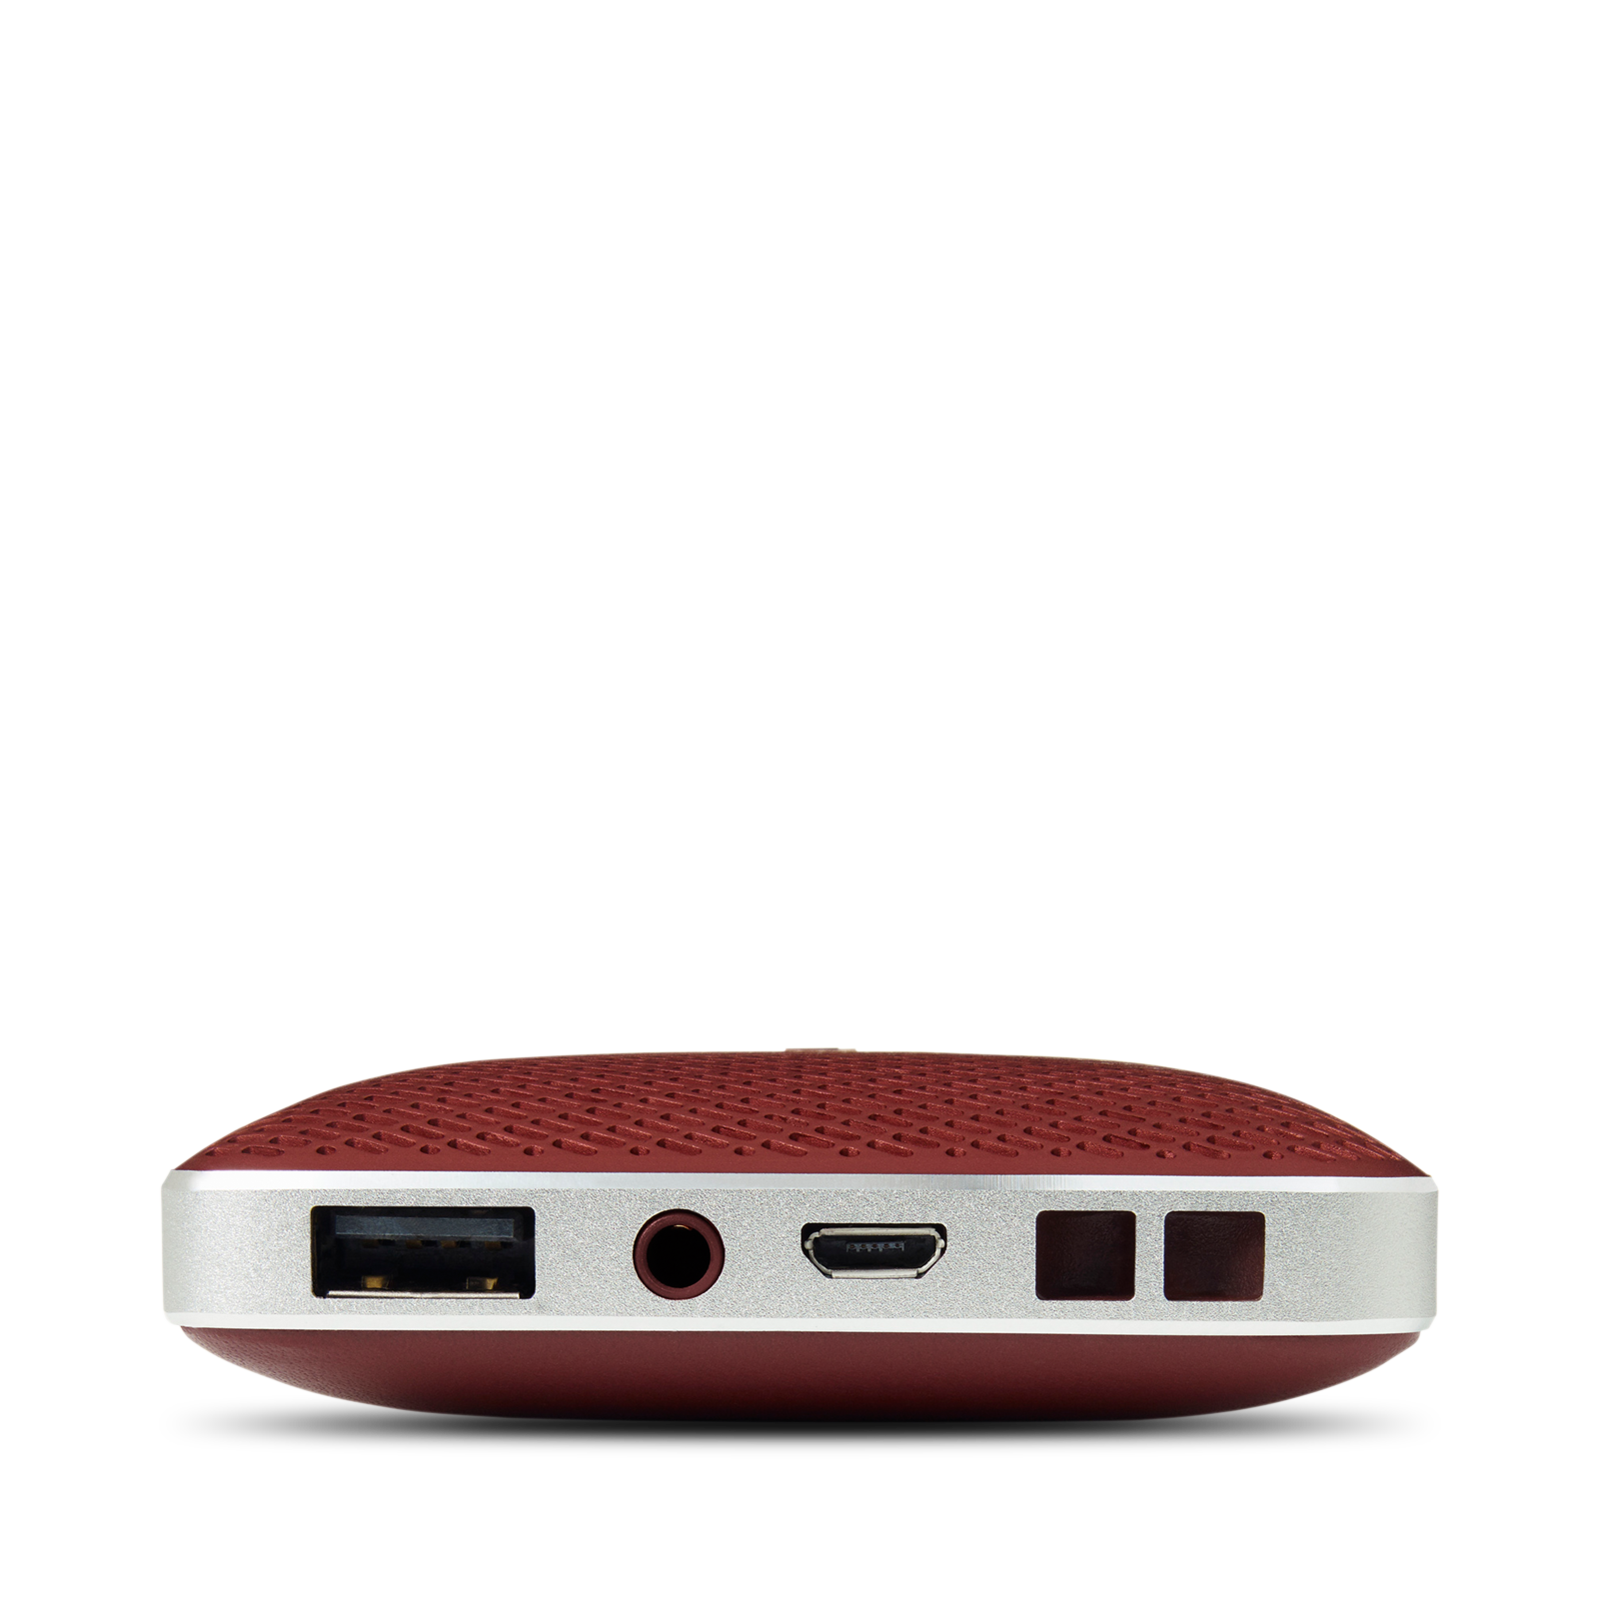 Esquire Mini - Red - Wireless, portable speaker and conferencing system - Detailshot 6